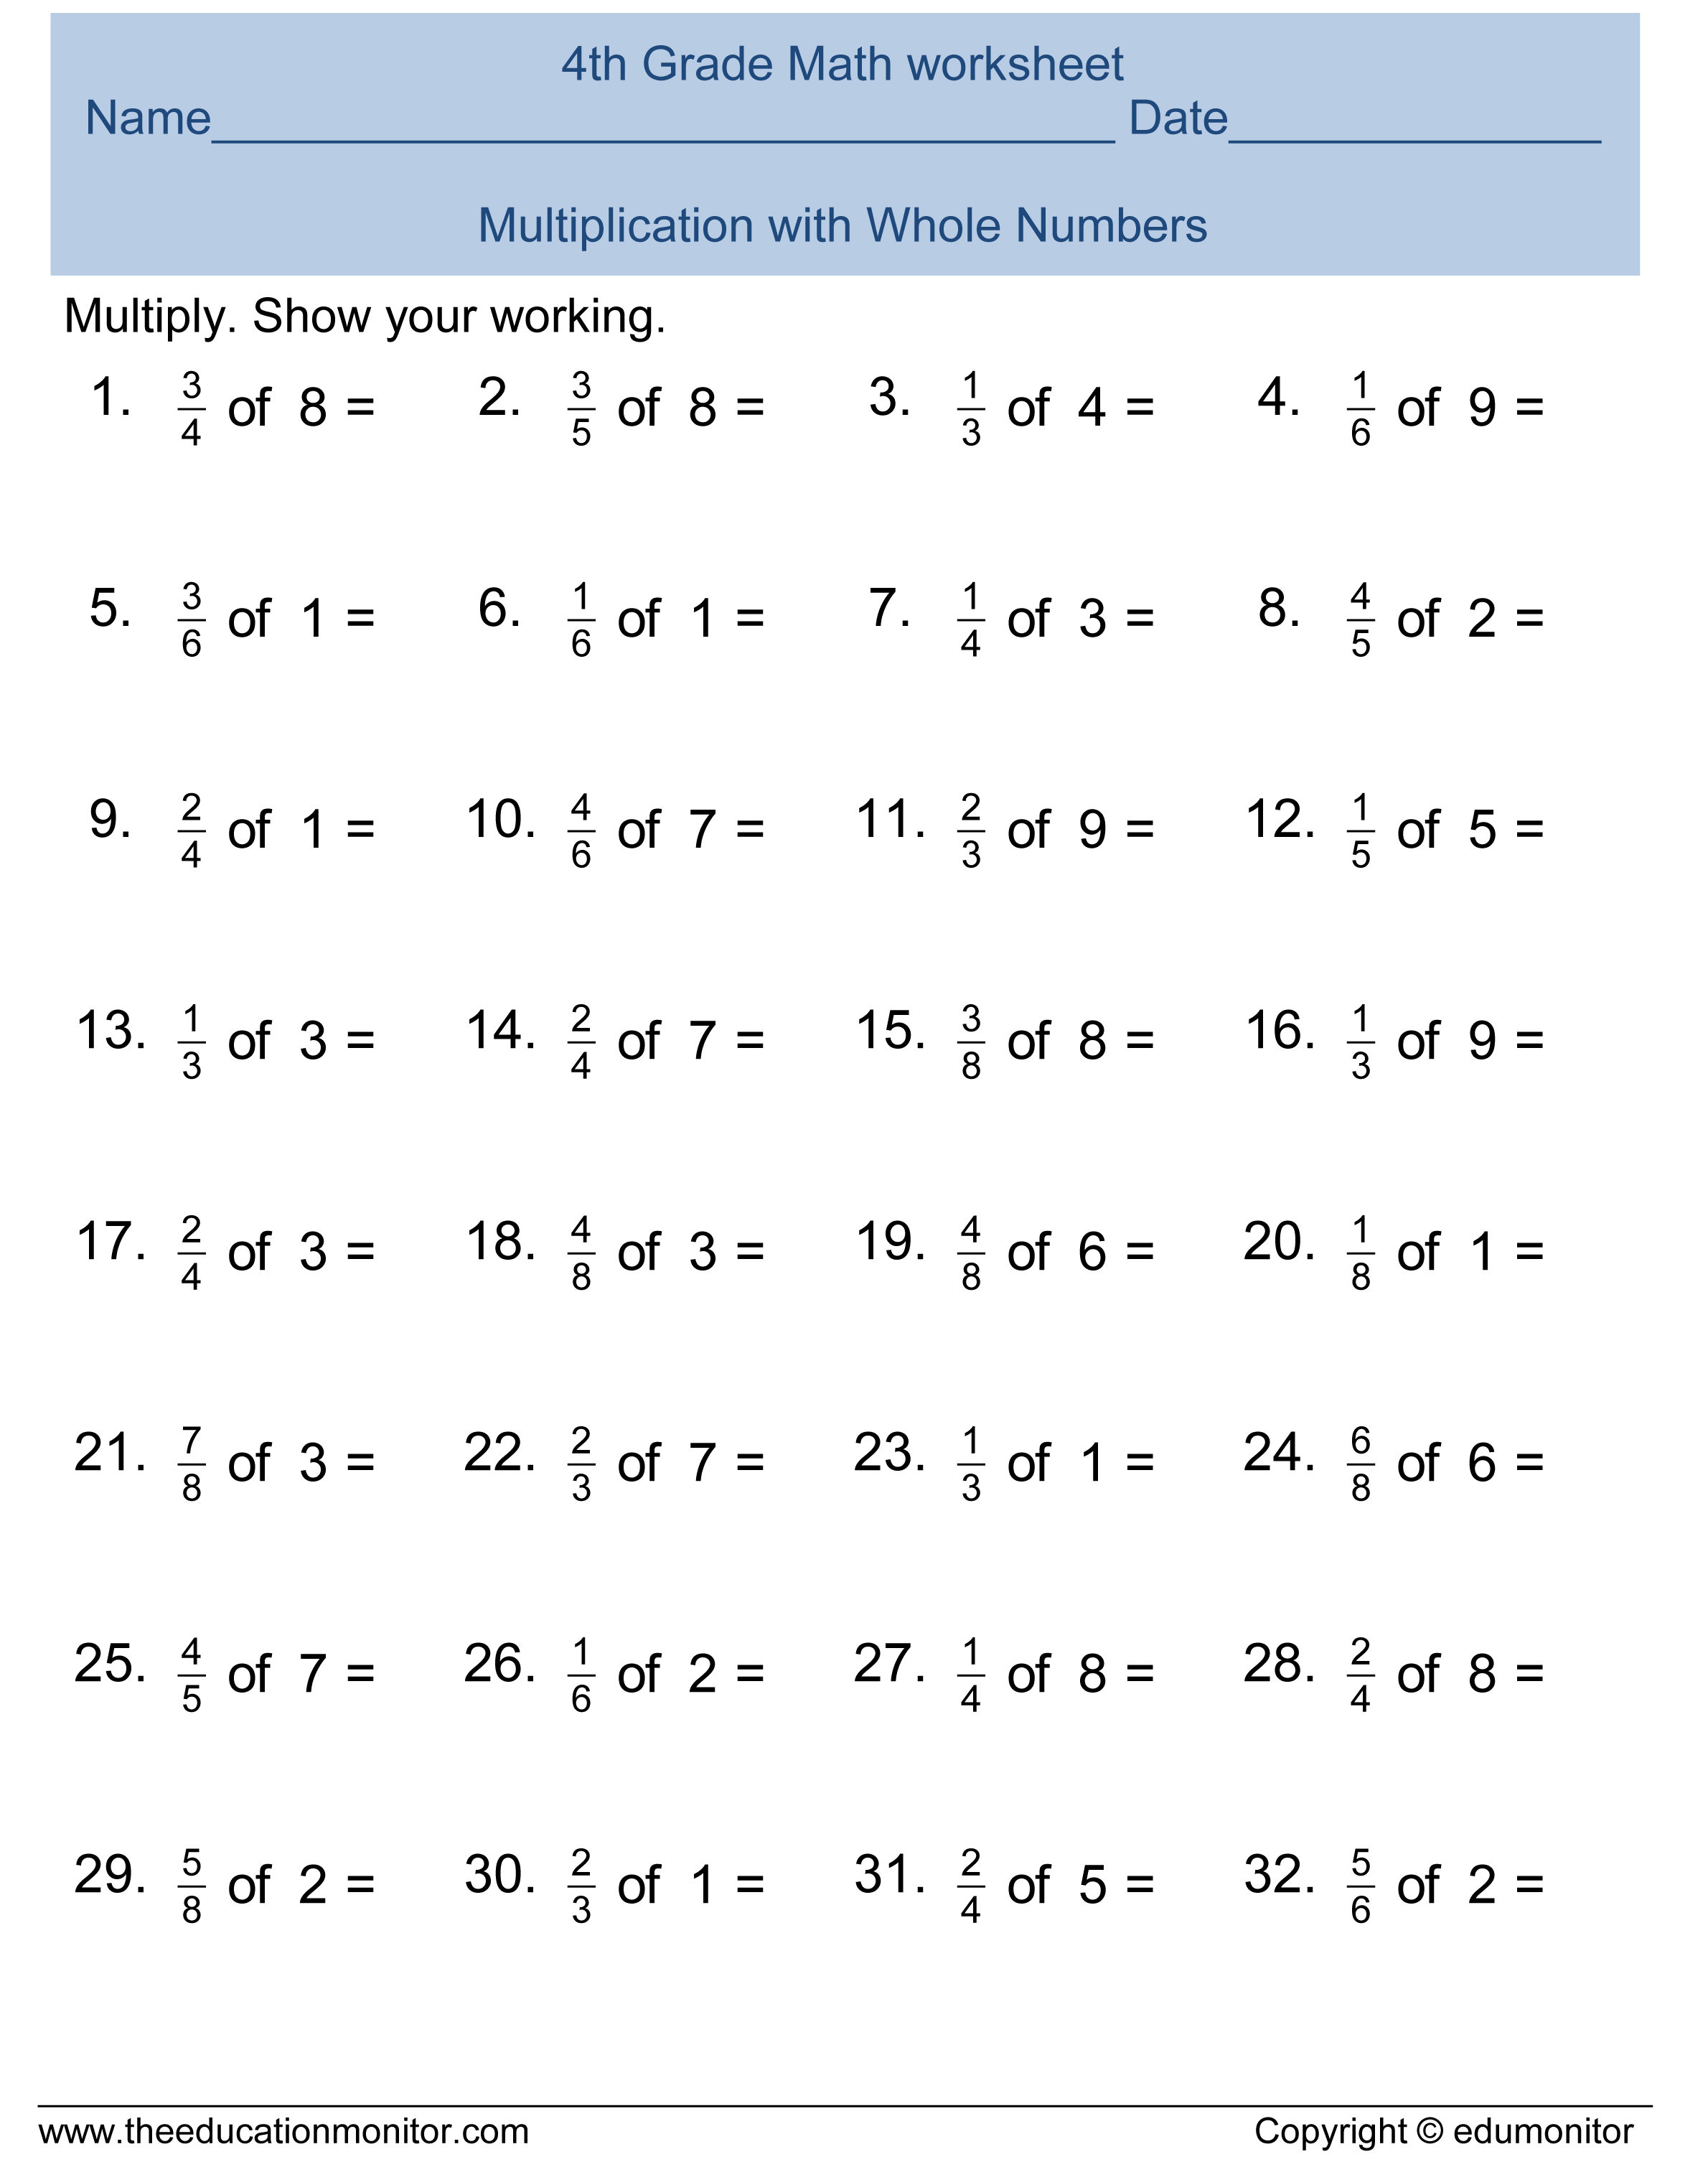 Printables Math Worksheets Fourth Grade math worksheets 4th grade subtraction 4 free printable k5 learning